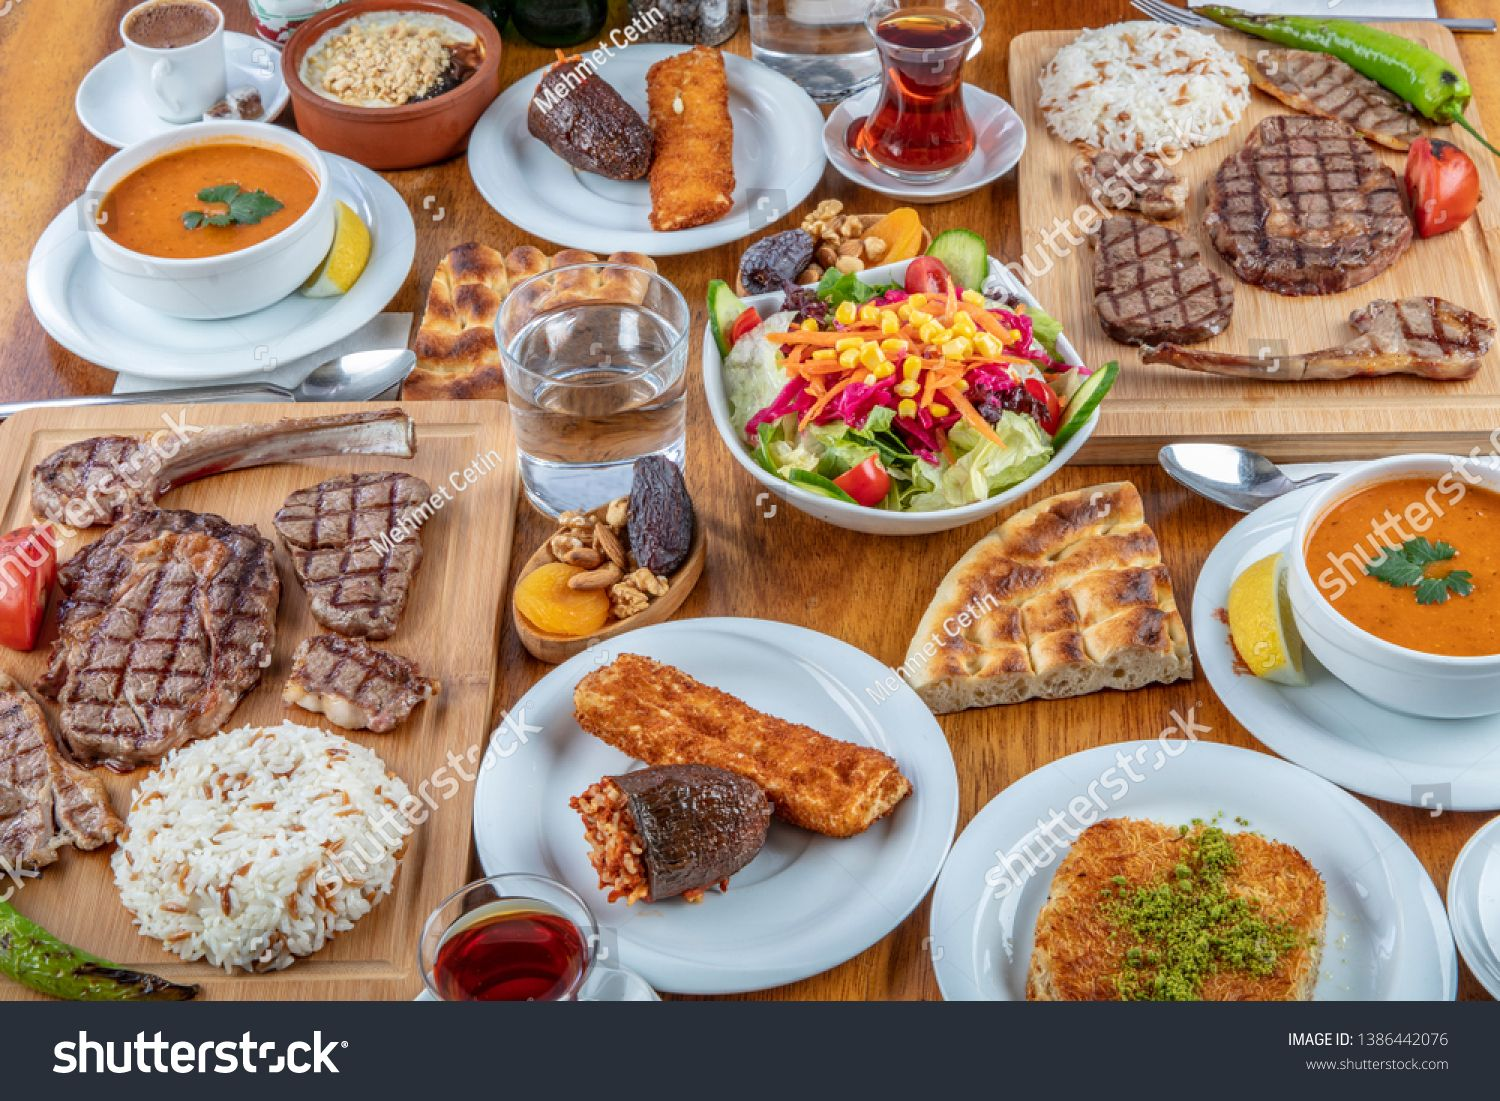 Turkish Cuisine It S Also Ramadan Iftar The Meal Eaten By